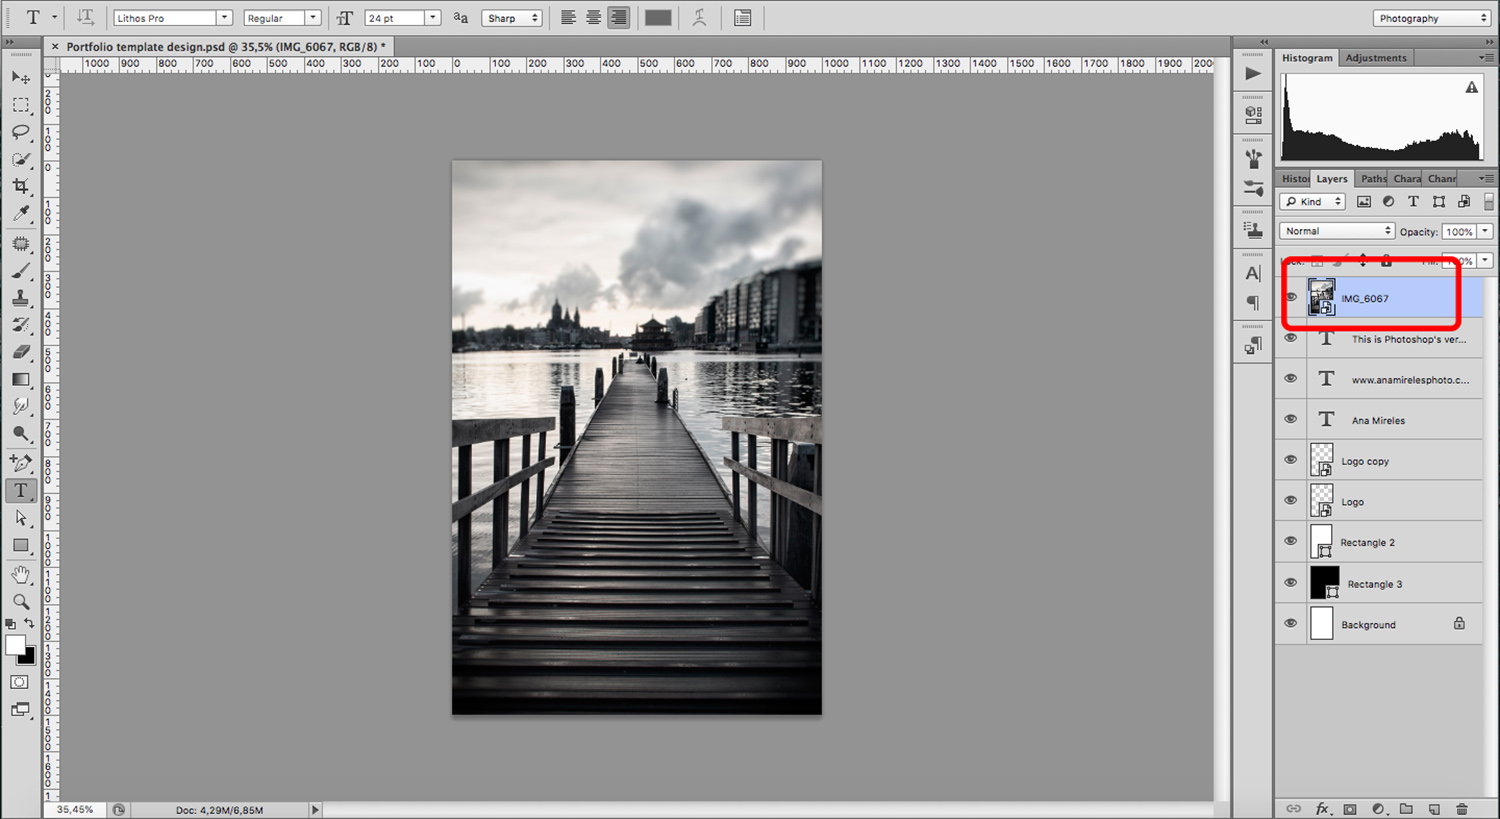 create a portfolio template for your photography